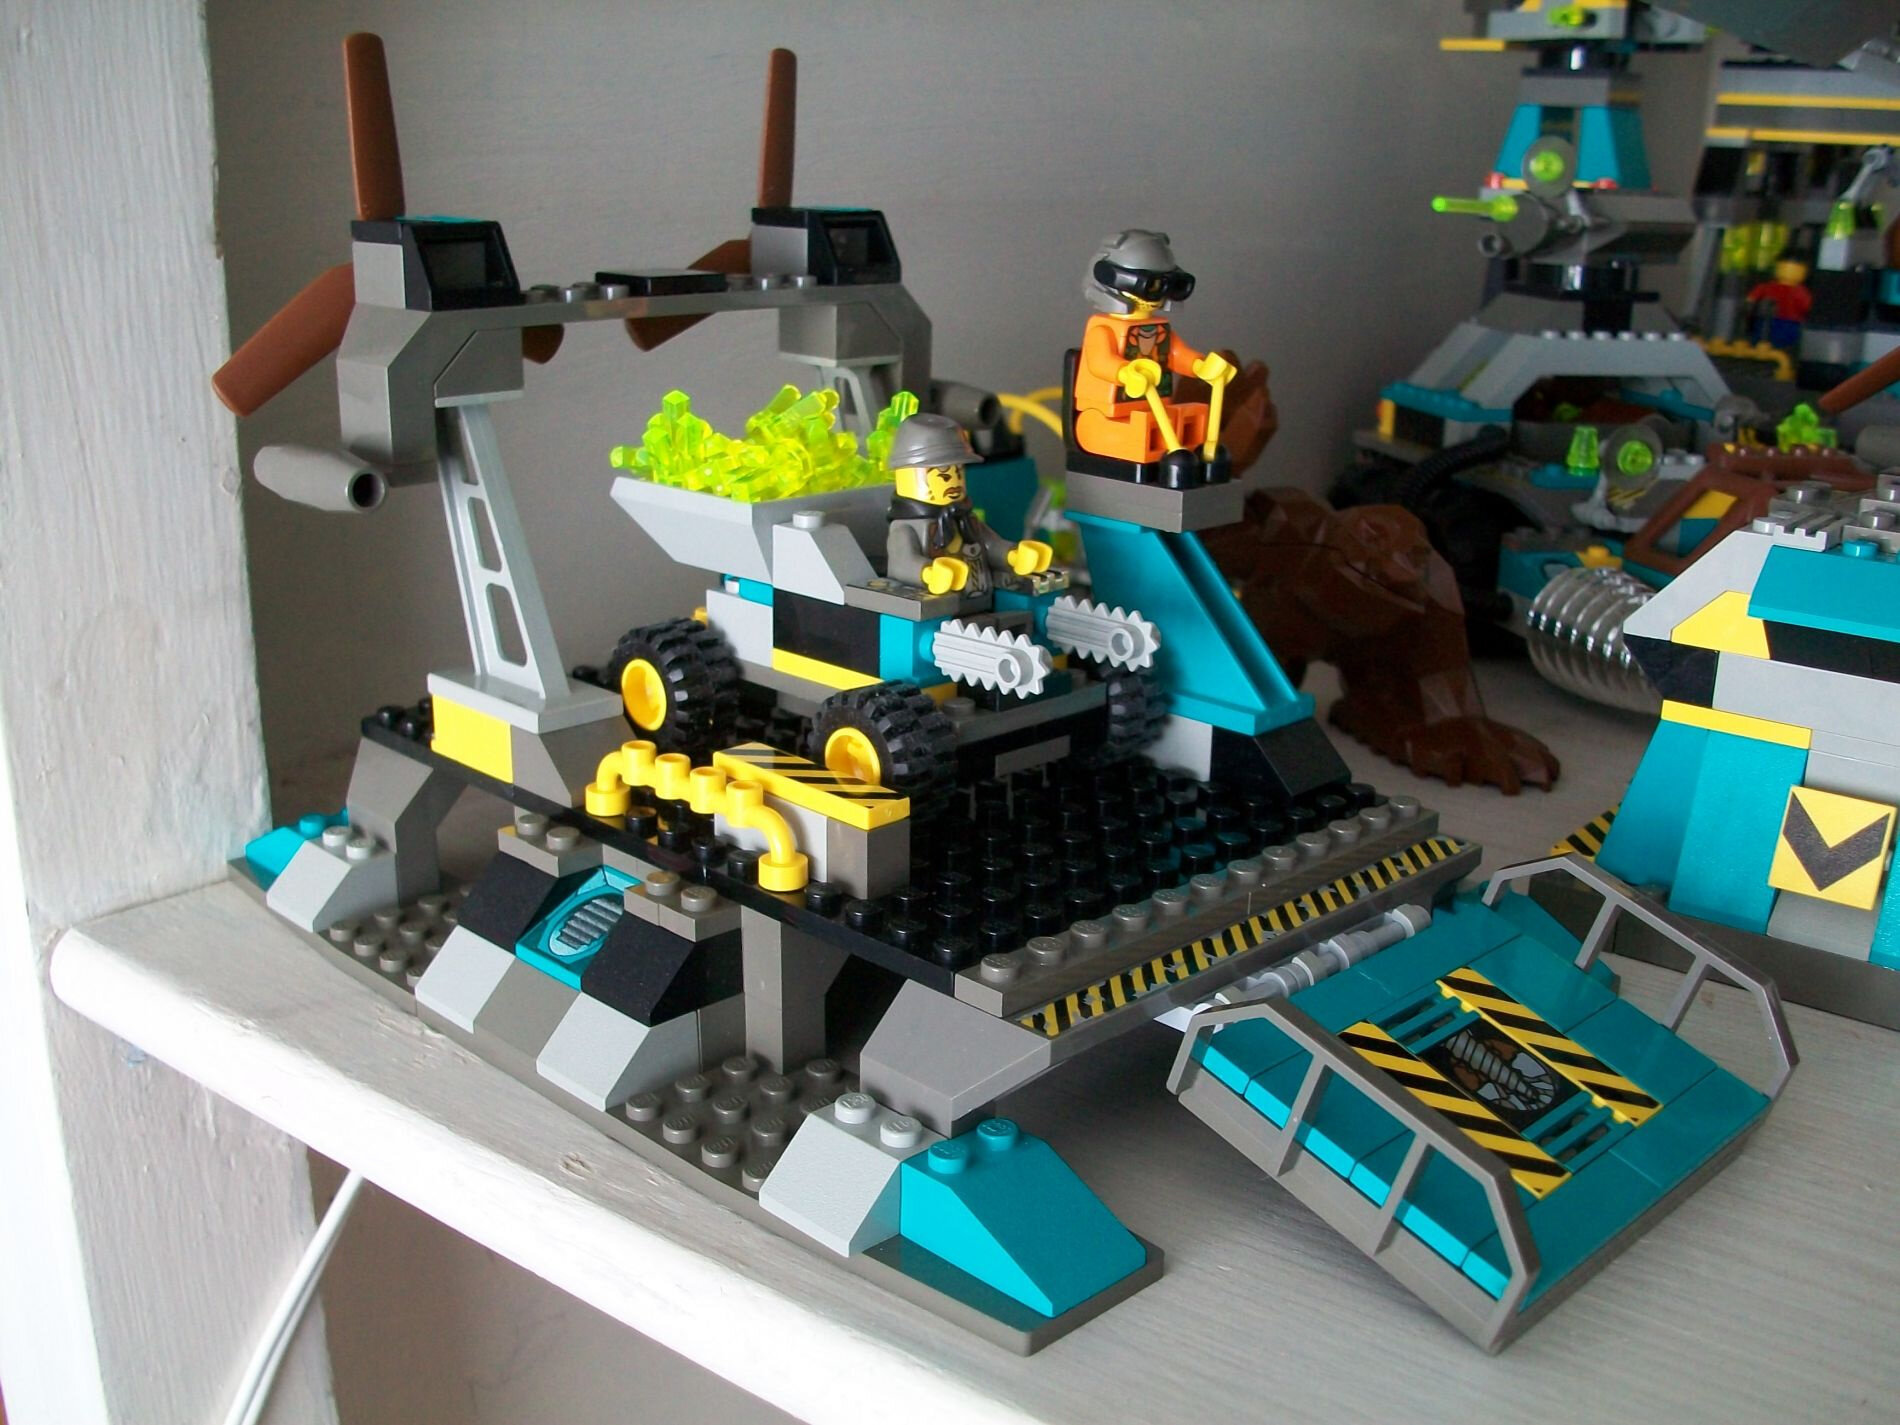 Have Anyone Ever Tried To Make Instructions For The Lego Rock